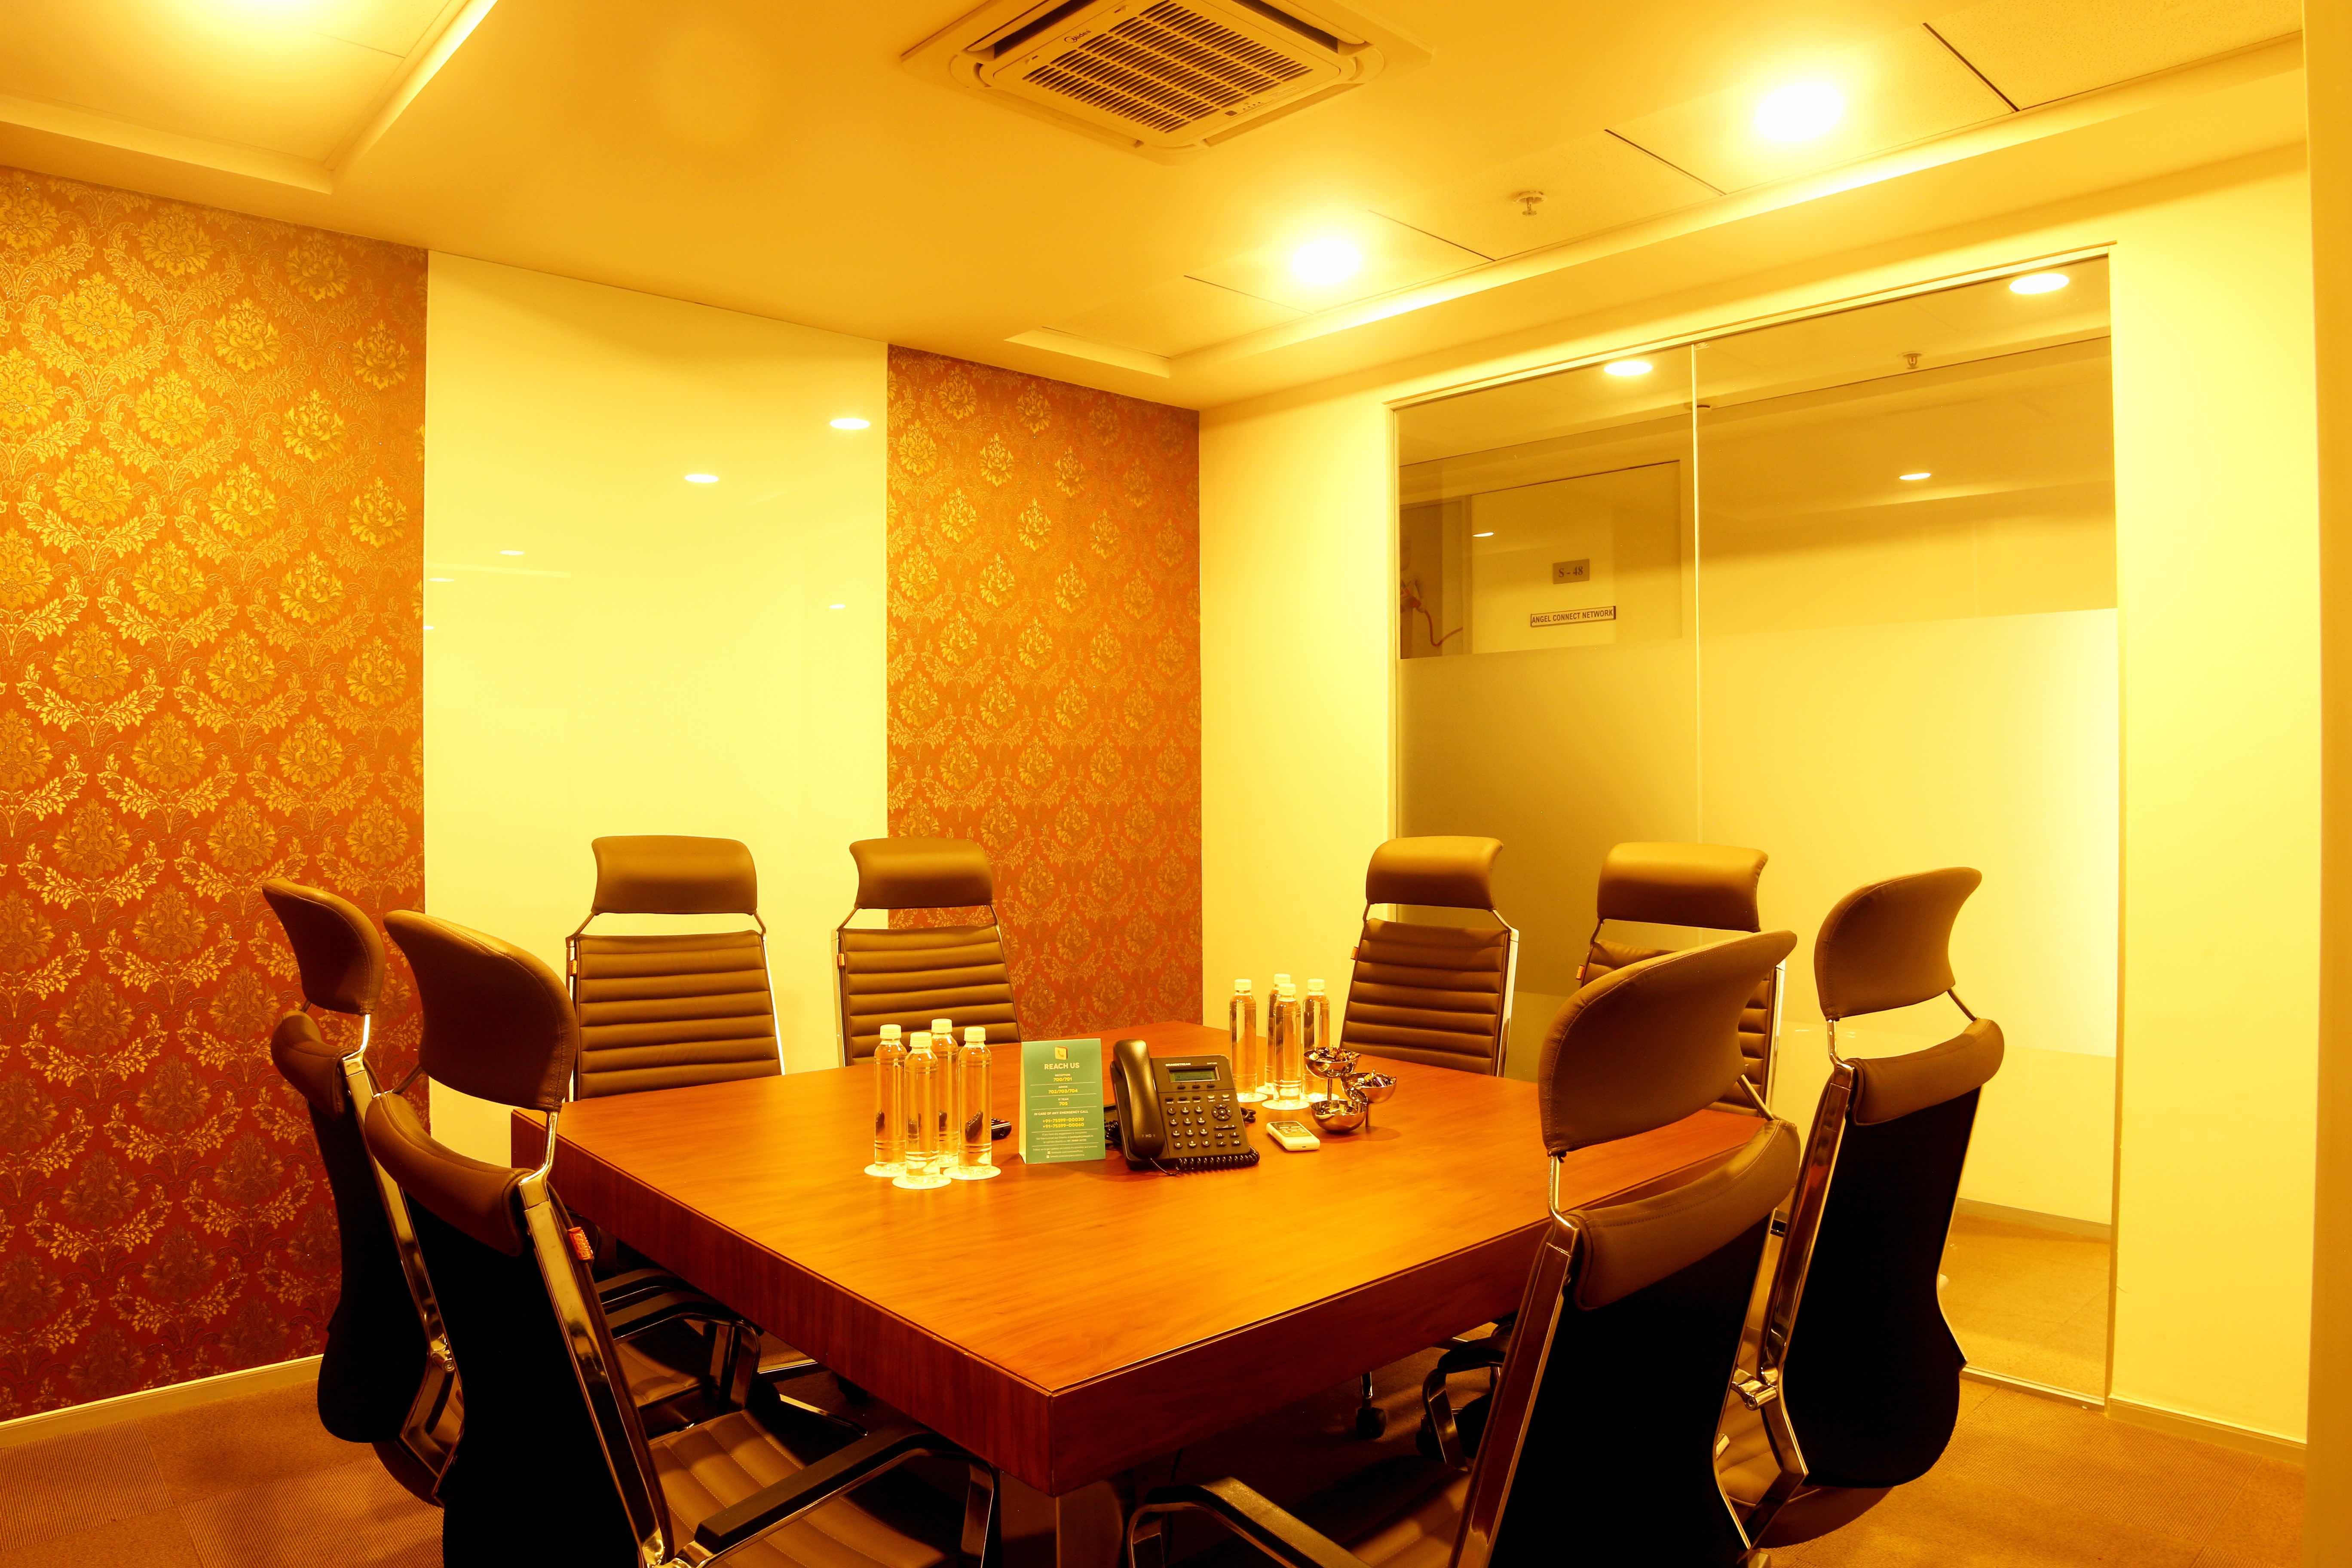 https://www.centre-a.com/blog/wp-content/uploads/2017/11/8-Seater-Meeting-Room